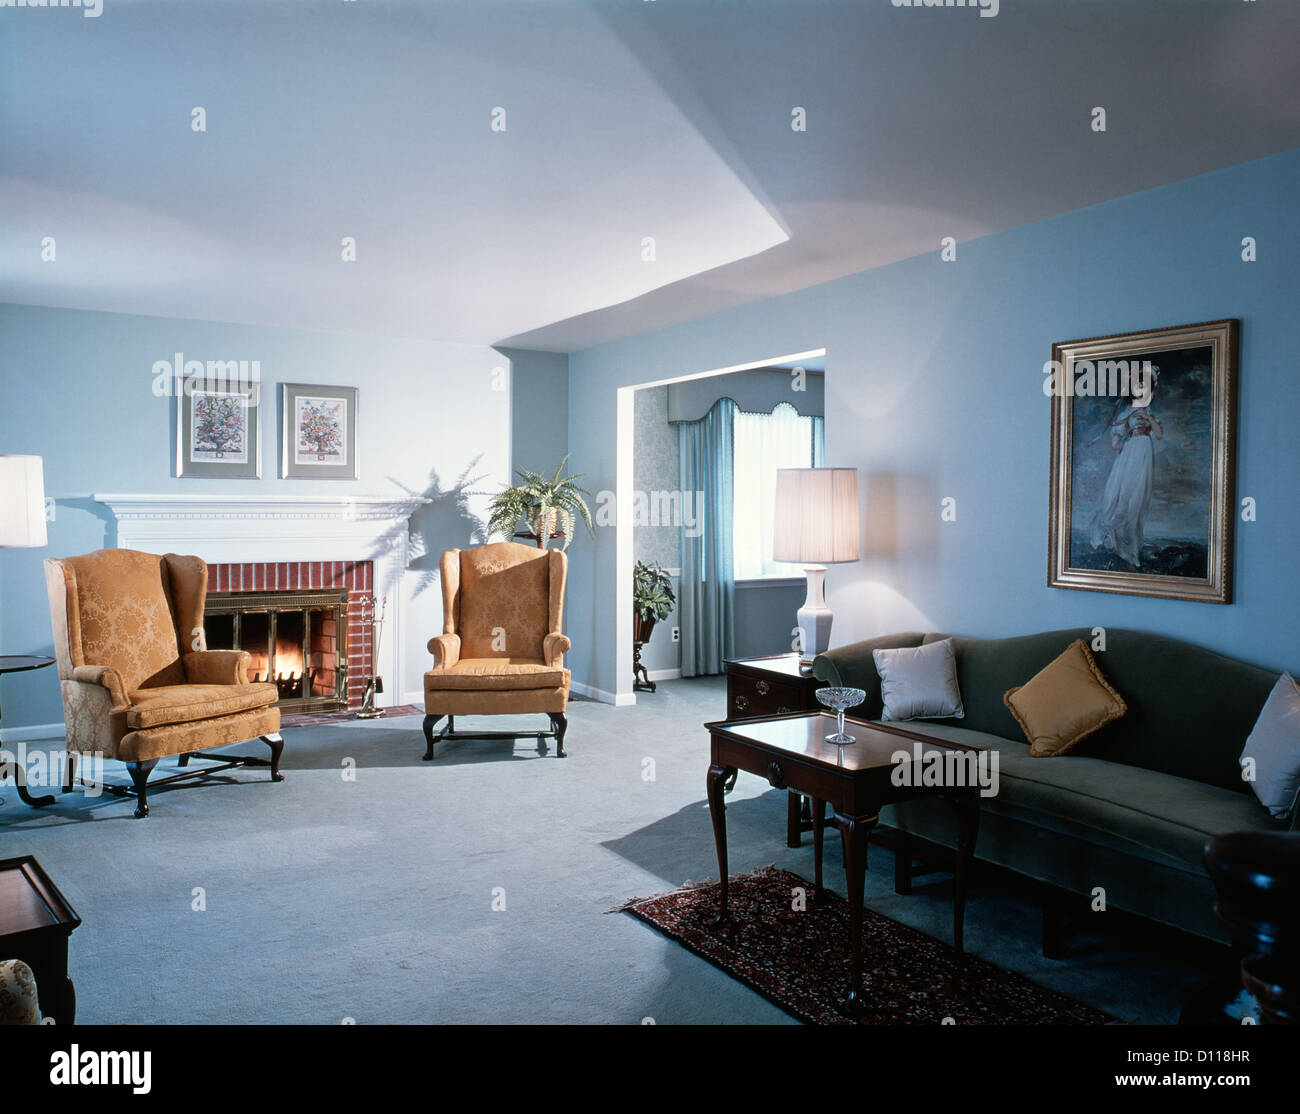 Image of: 1970s Living Room Blue Wall To Wall Carpeting English Traditional Stock Photo Alamy